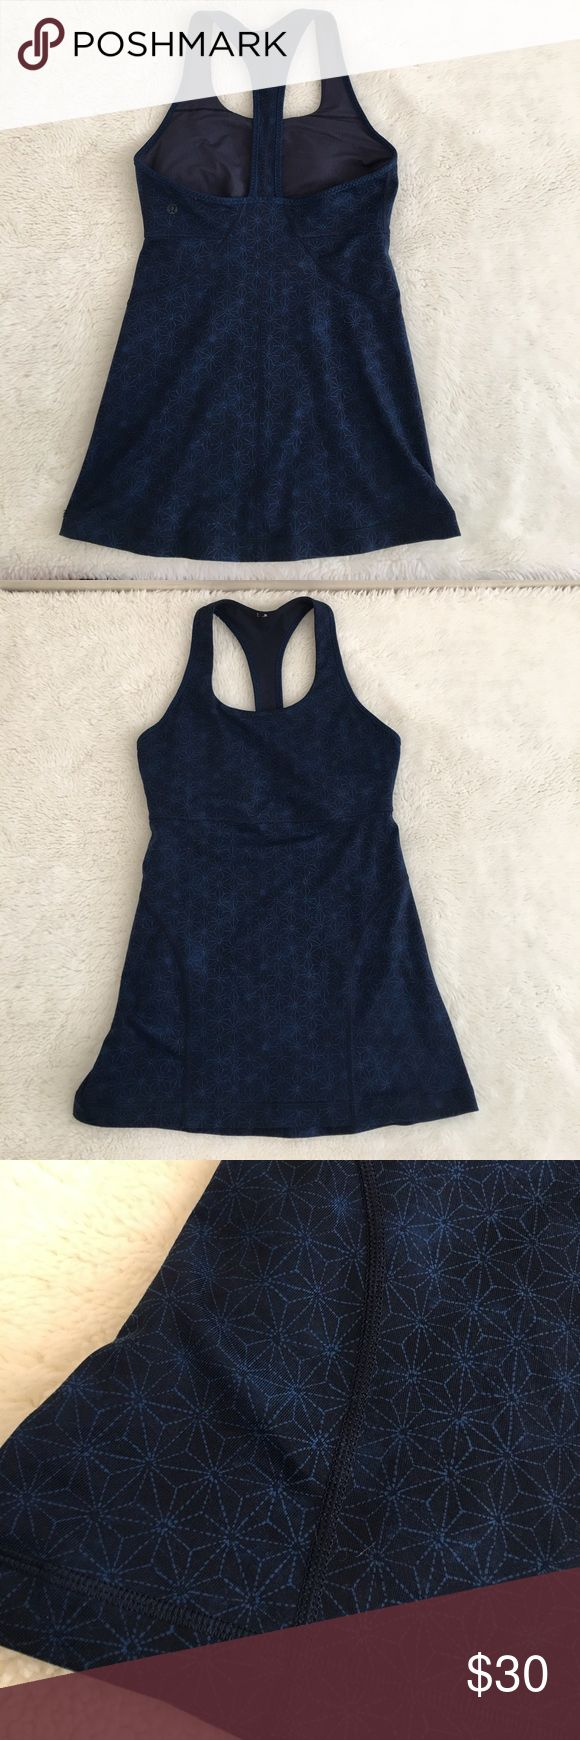 Lululemon Navy Blue and Black Tank Top Size 6 Pre-owned authentic Lululemon Navy Blue and Black Tank Top Size 6. Excellent like new condition. Has builtin bra. Please look at pictures for better reference. Happy Shopping! lululemon athletica Tops Tank Tops